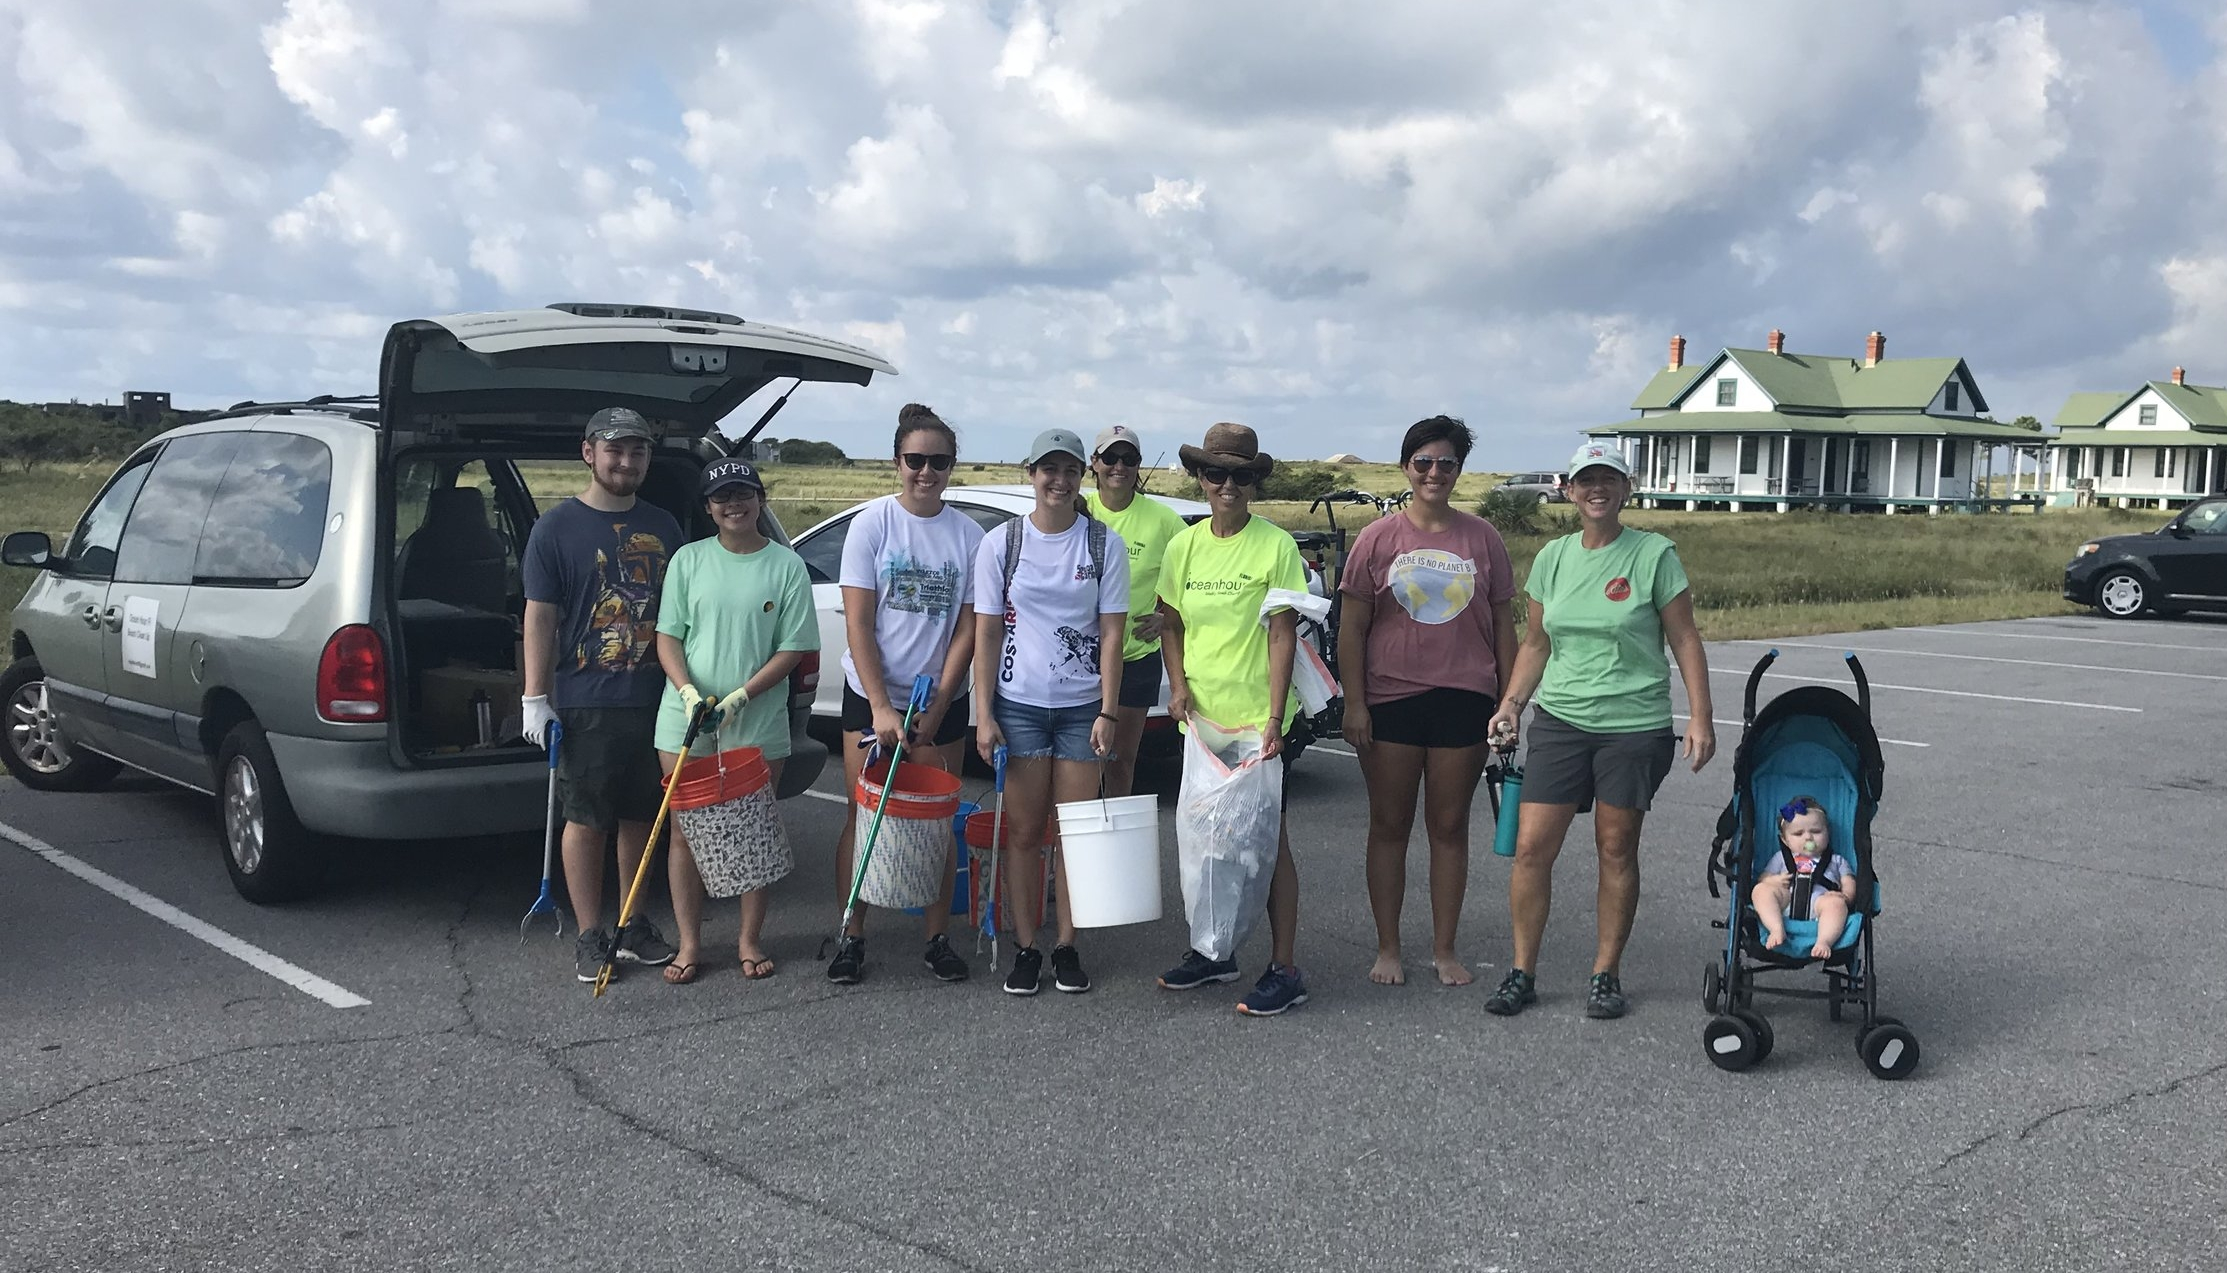 - UWF 's Pre-Physicians Assistants and GBHS Science Club joined in collecting 130 lbs of plastic and styrofoam by 64 volunteers - 971 straws at Quietwater Beach AFTER the beach sieve drove over!!